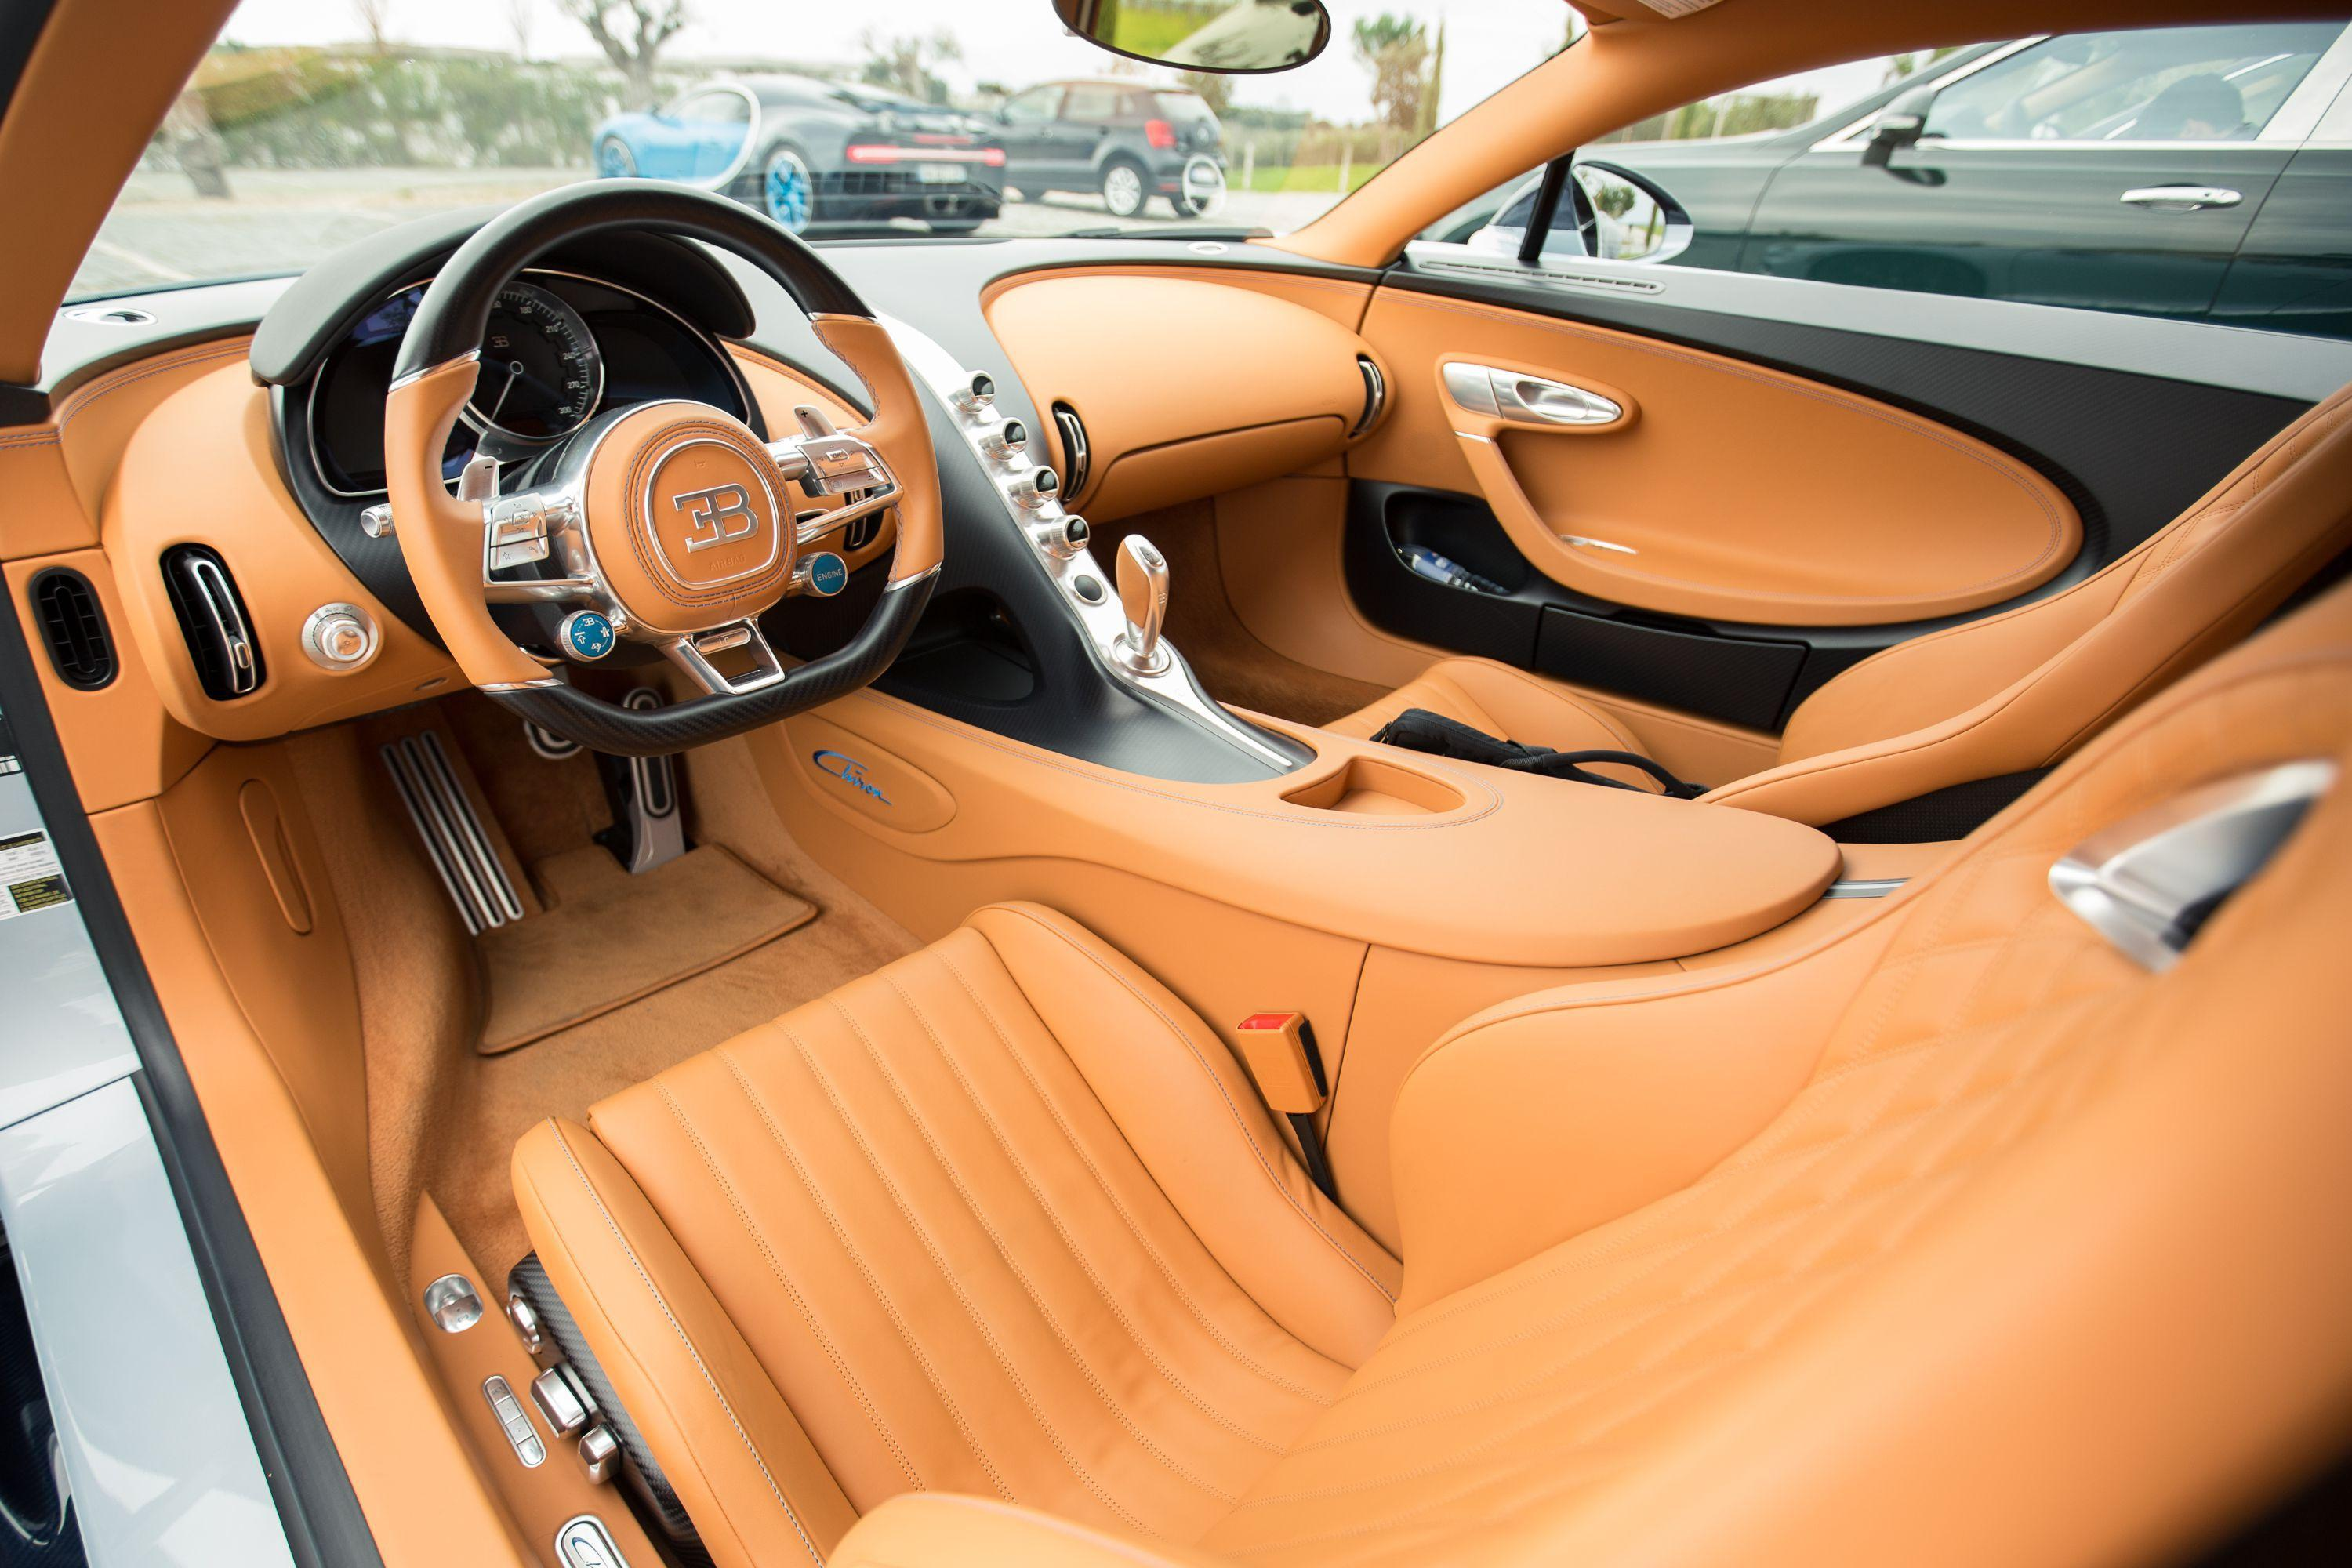 Deep dive: Take a look at the tech in the Bugatti Chiron